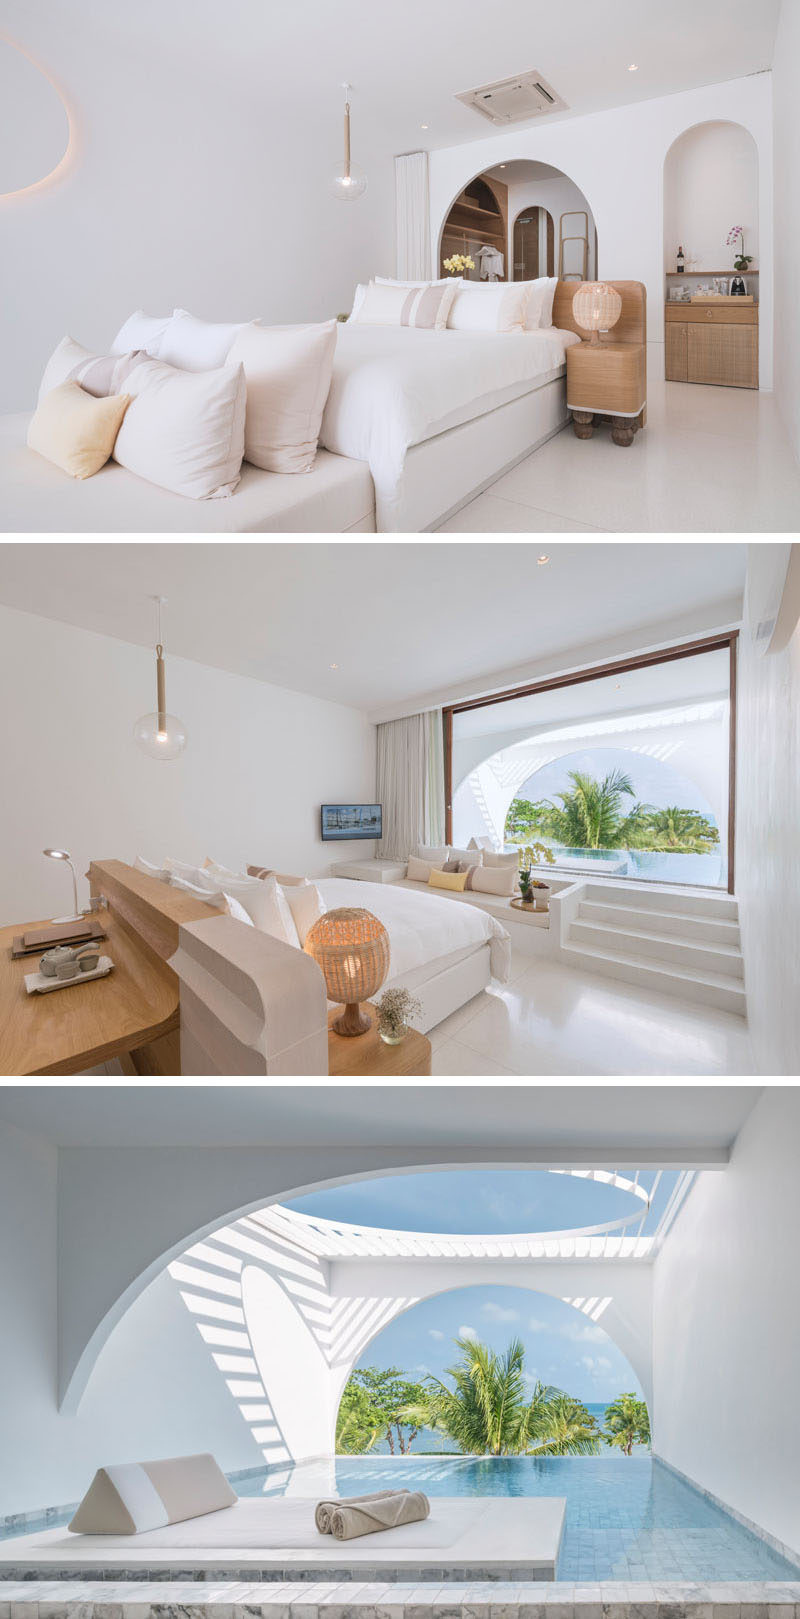 This modern hotel suite has a built-in couch that sits next to the steps that lead out to the private pool, while a desk has been built into the headboard of the bed. #HotelSuite #ModernHotelRoom #SwimmingPool